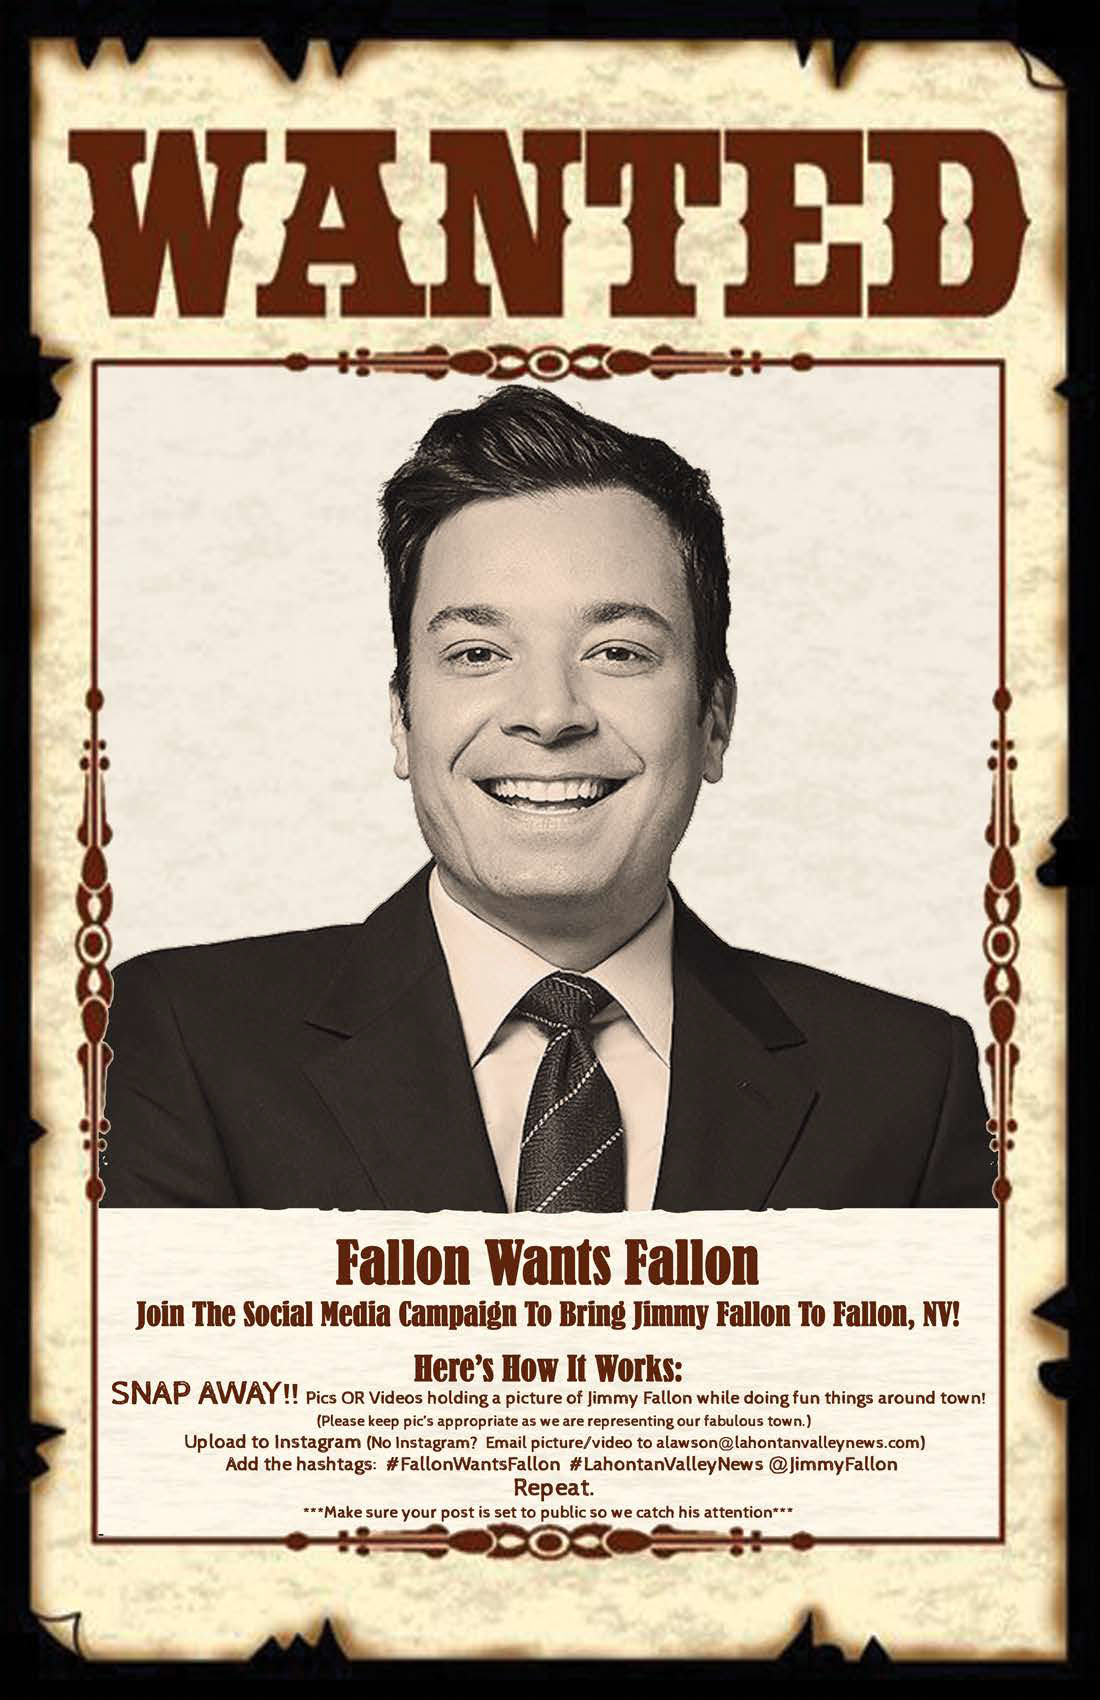 Reynolds Alumna is trying to get Jimmy Fallon to visit, well, Fallon, Nevada